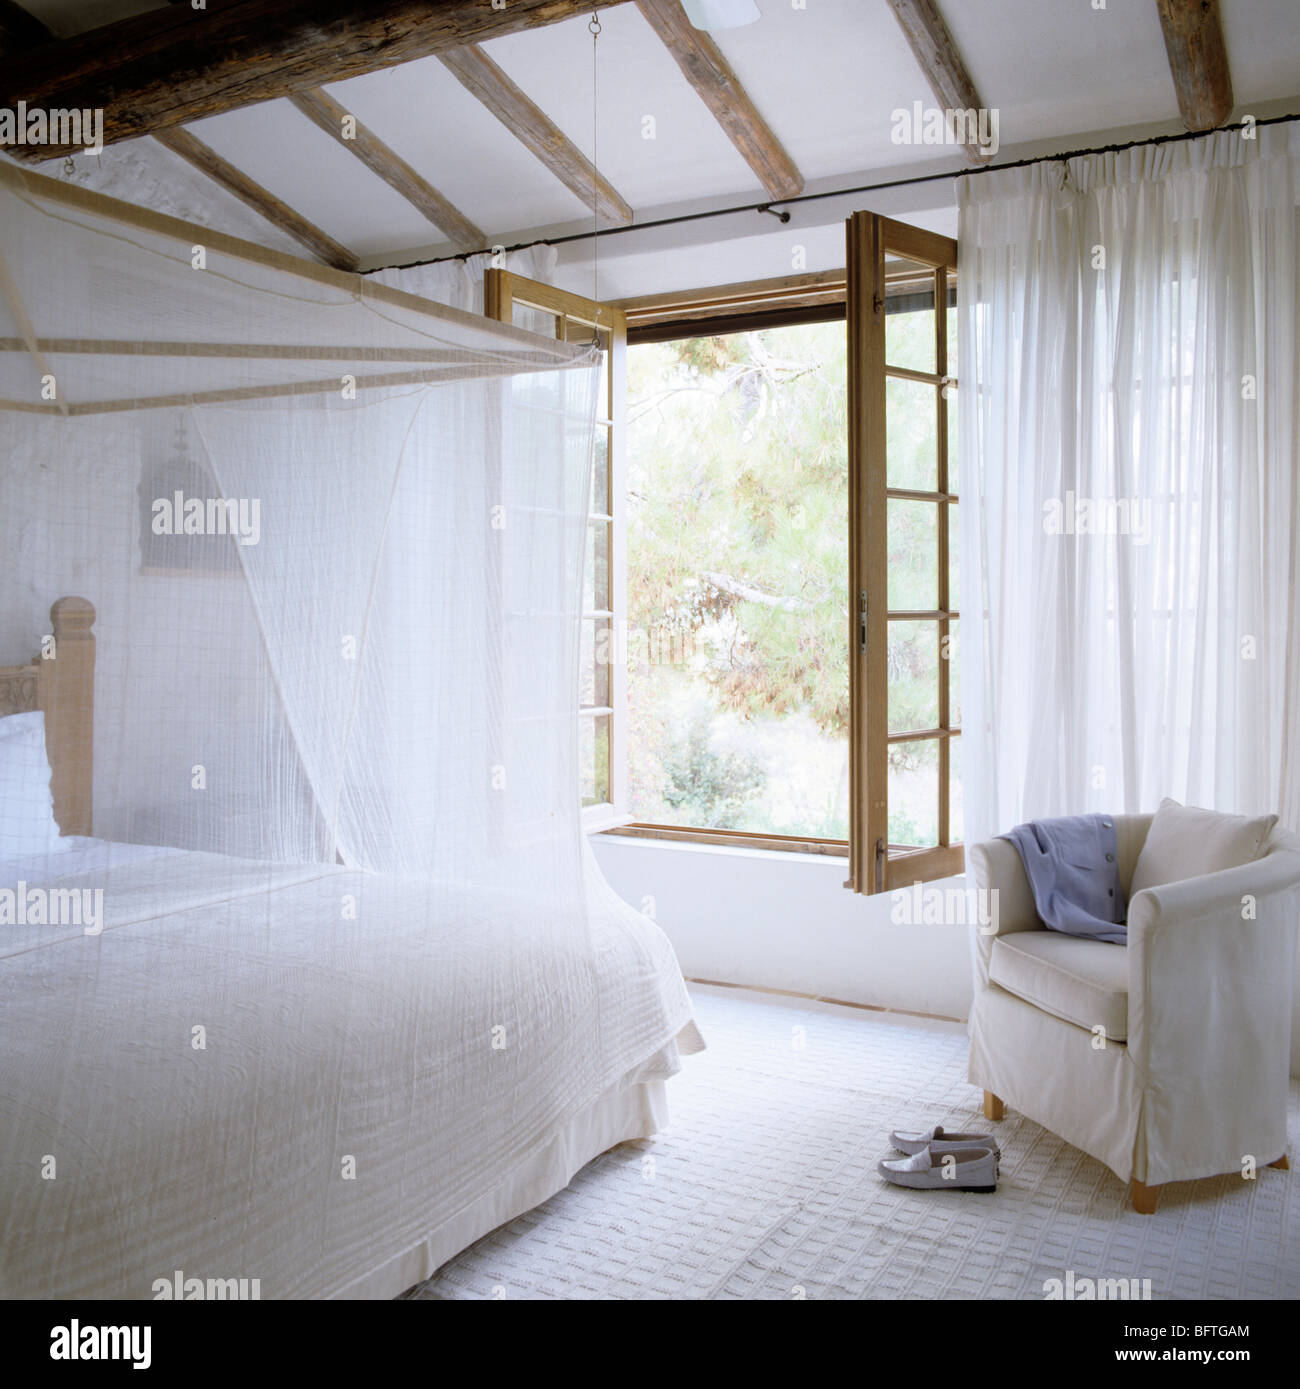 Bedroom With Open Windows White Curtains And Muslin Bed Cover